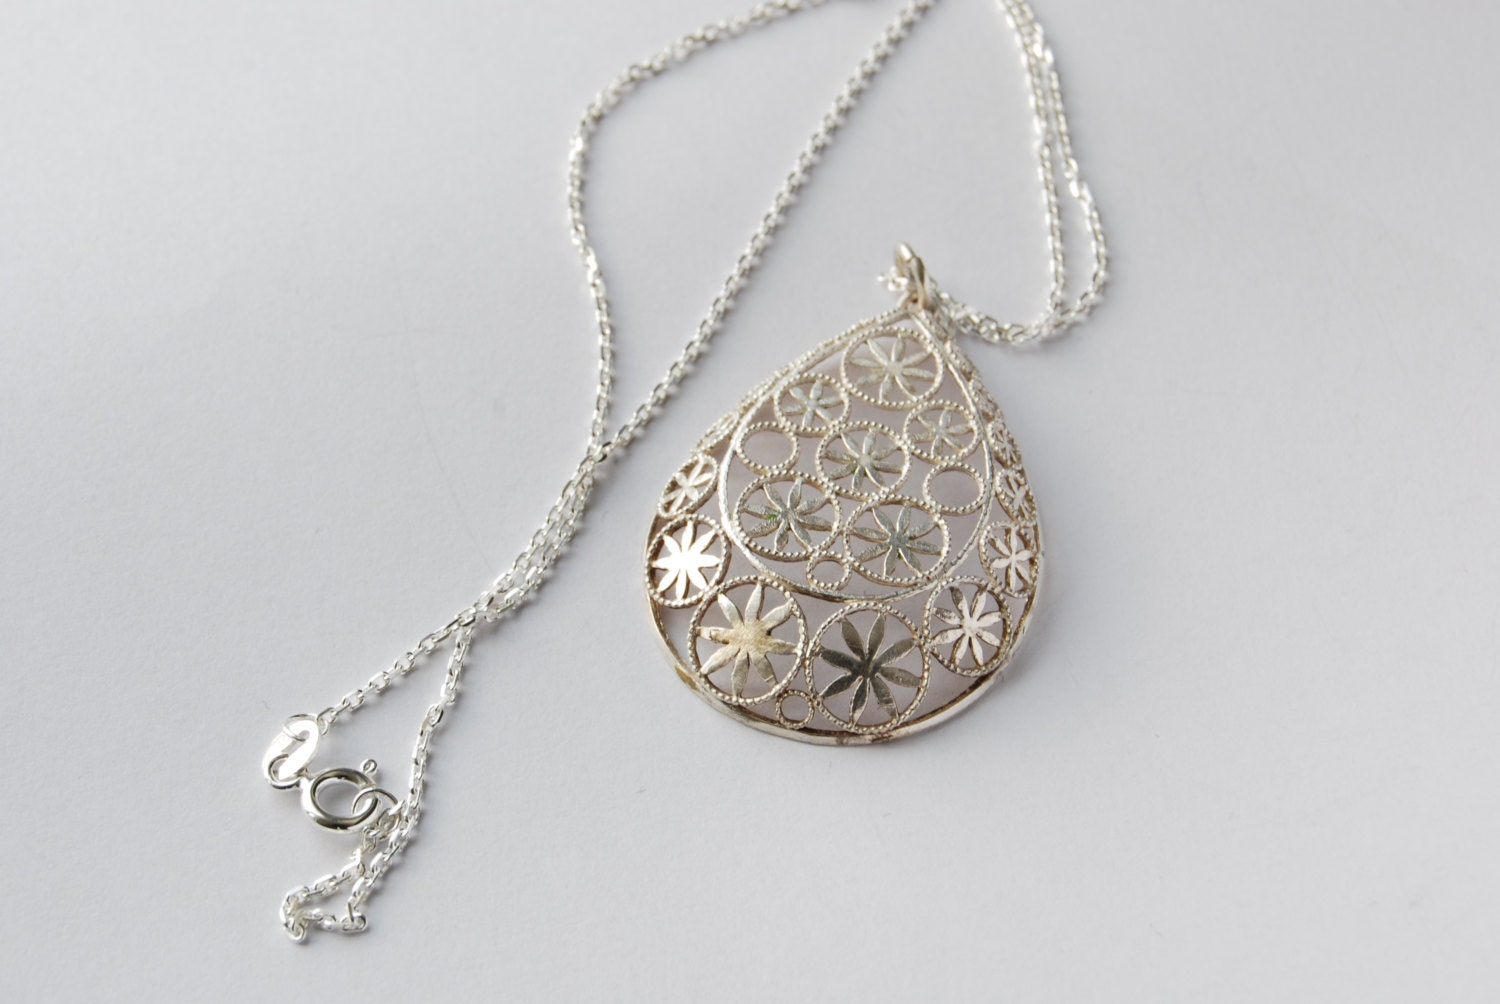 Silver filigree  pendant with silver chain - Crowsdream